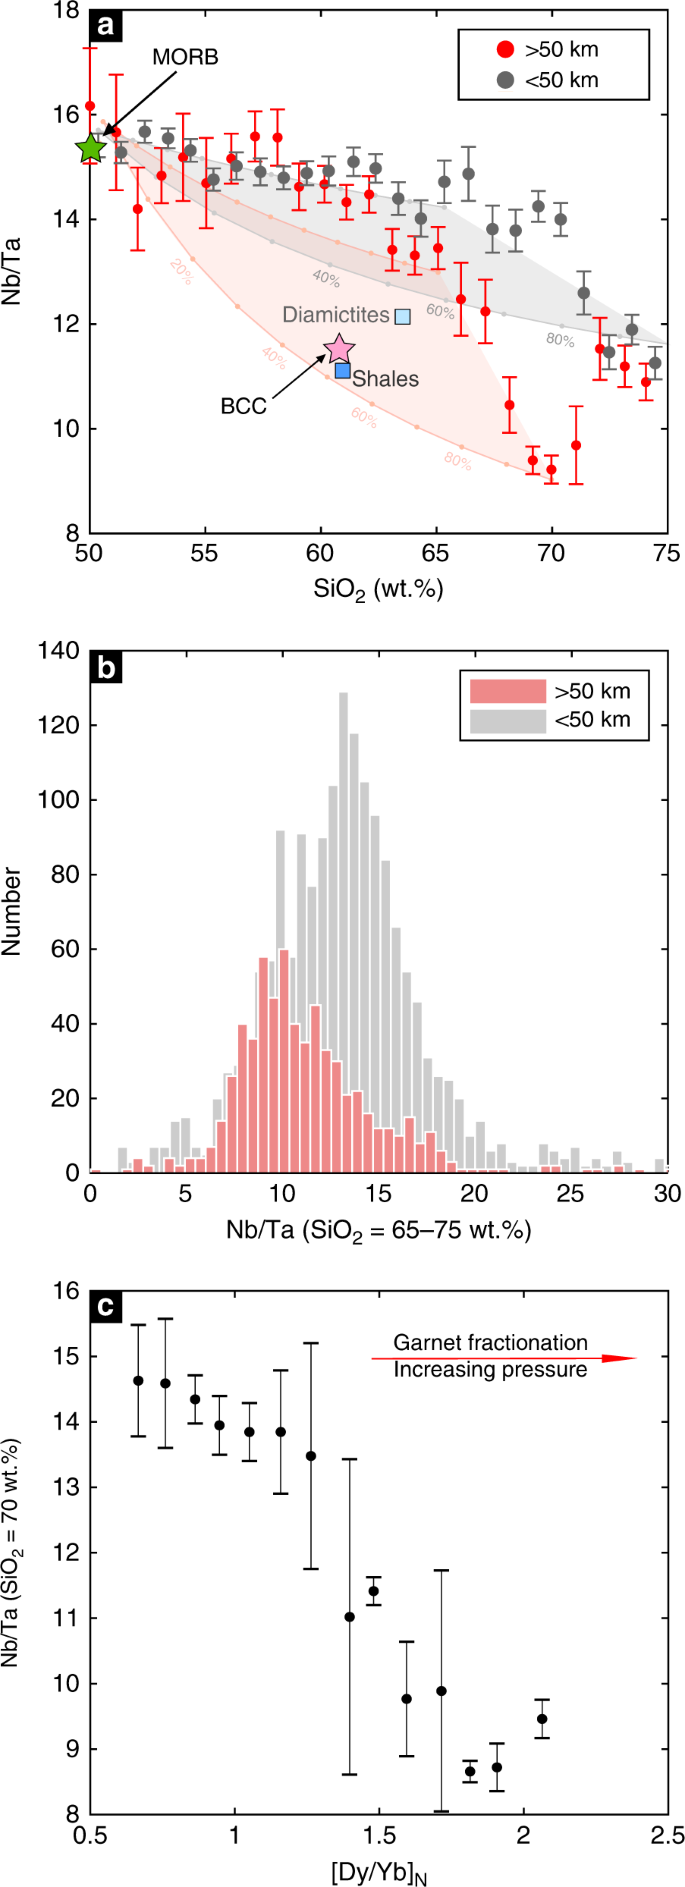 Nb/Ta systematics in arc magma differentiation and the role